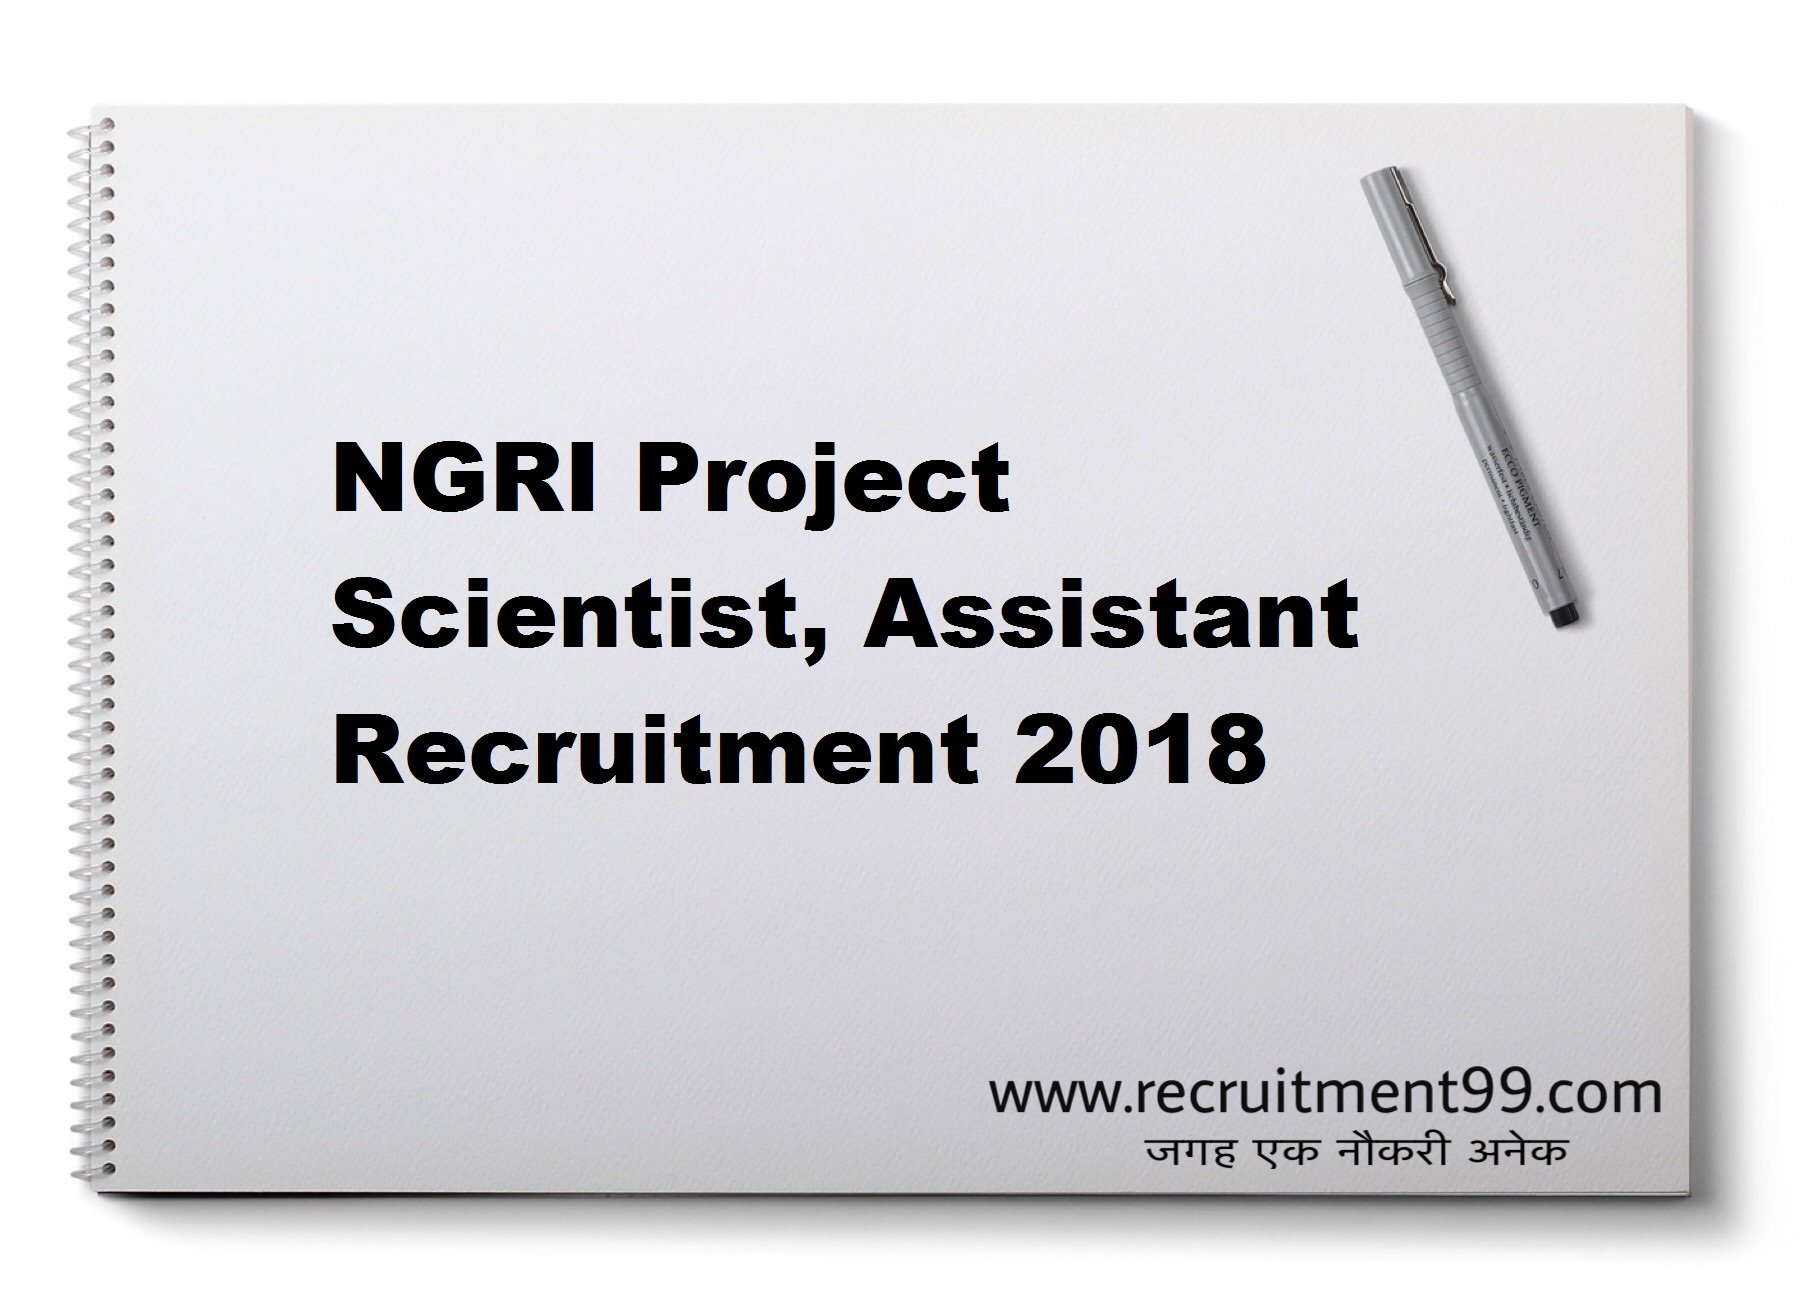 NGRI Project Scientist, Assistant Recruitment Admit Card Result 2018